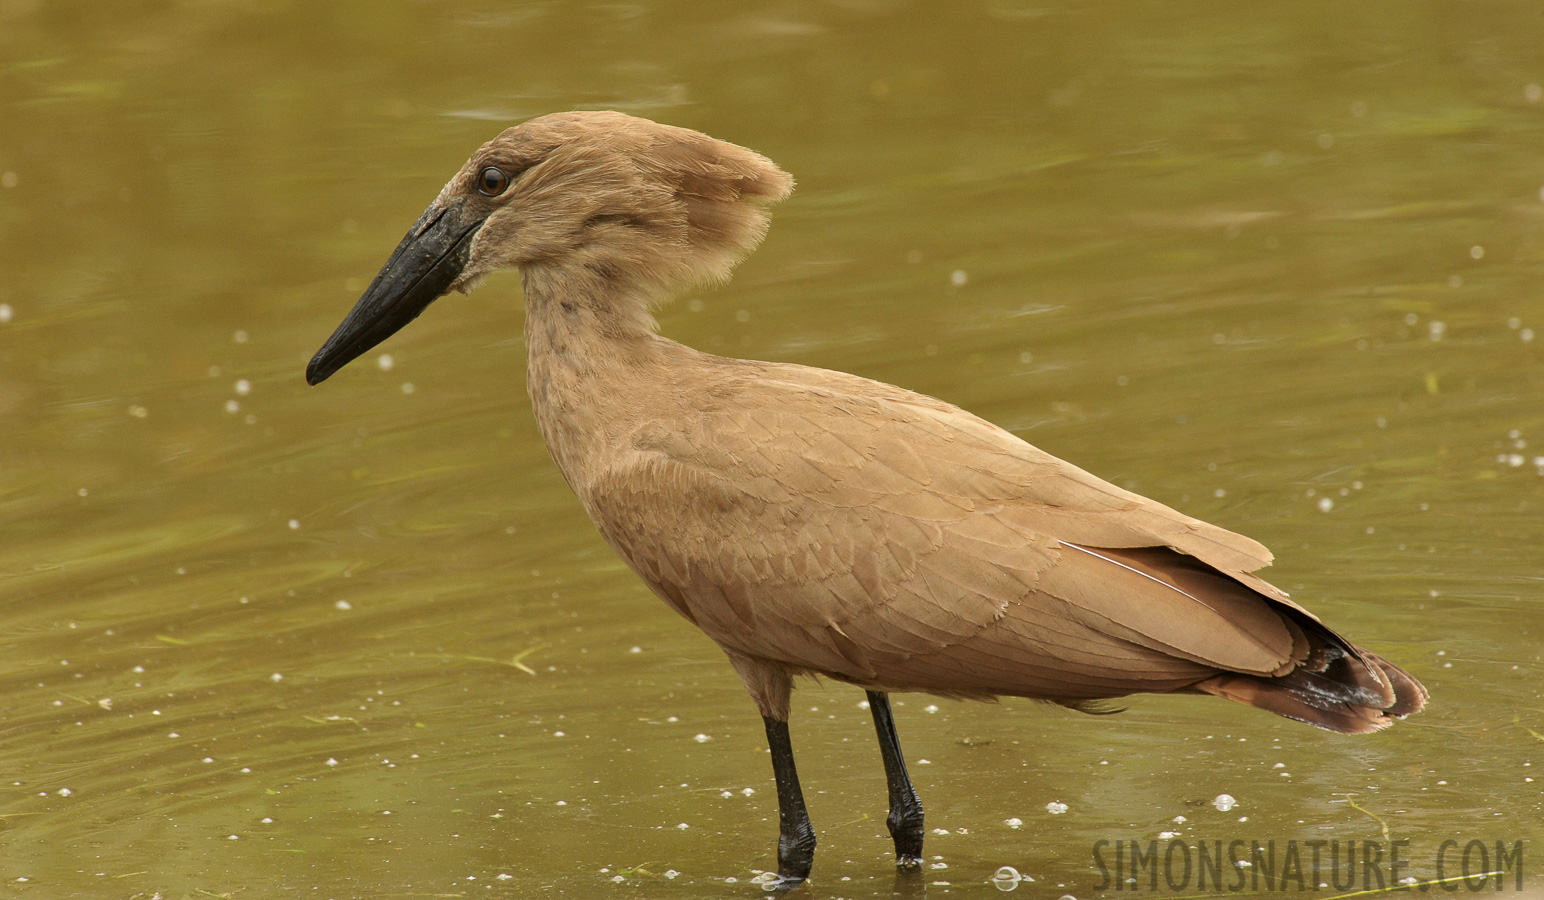 Hamerkop [Scopus umbretta umbretta]